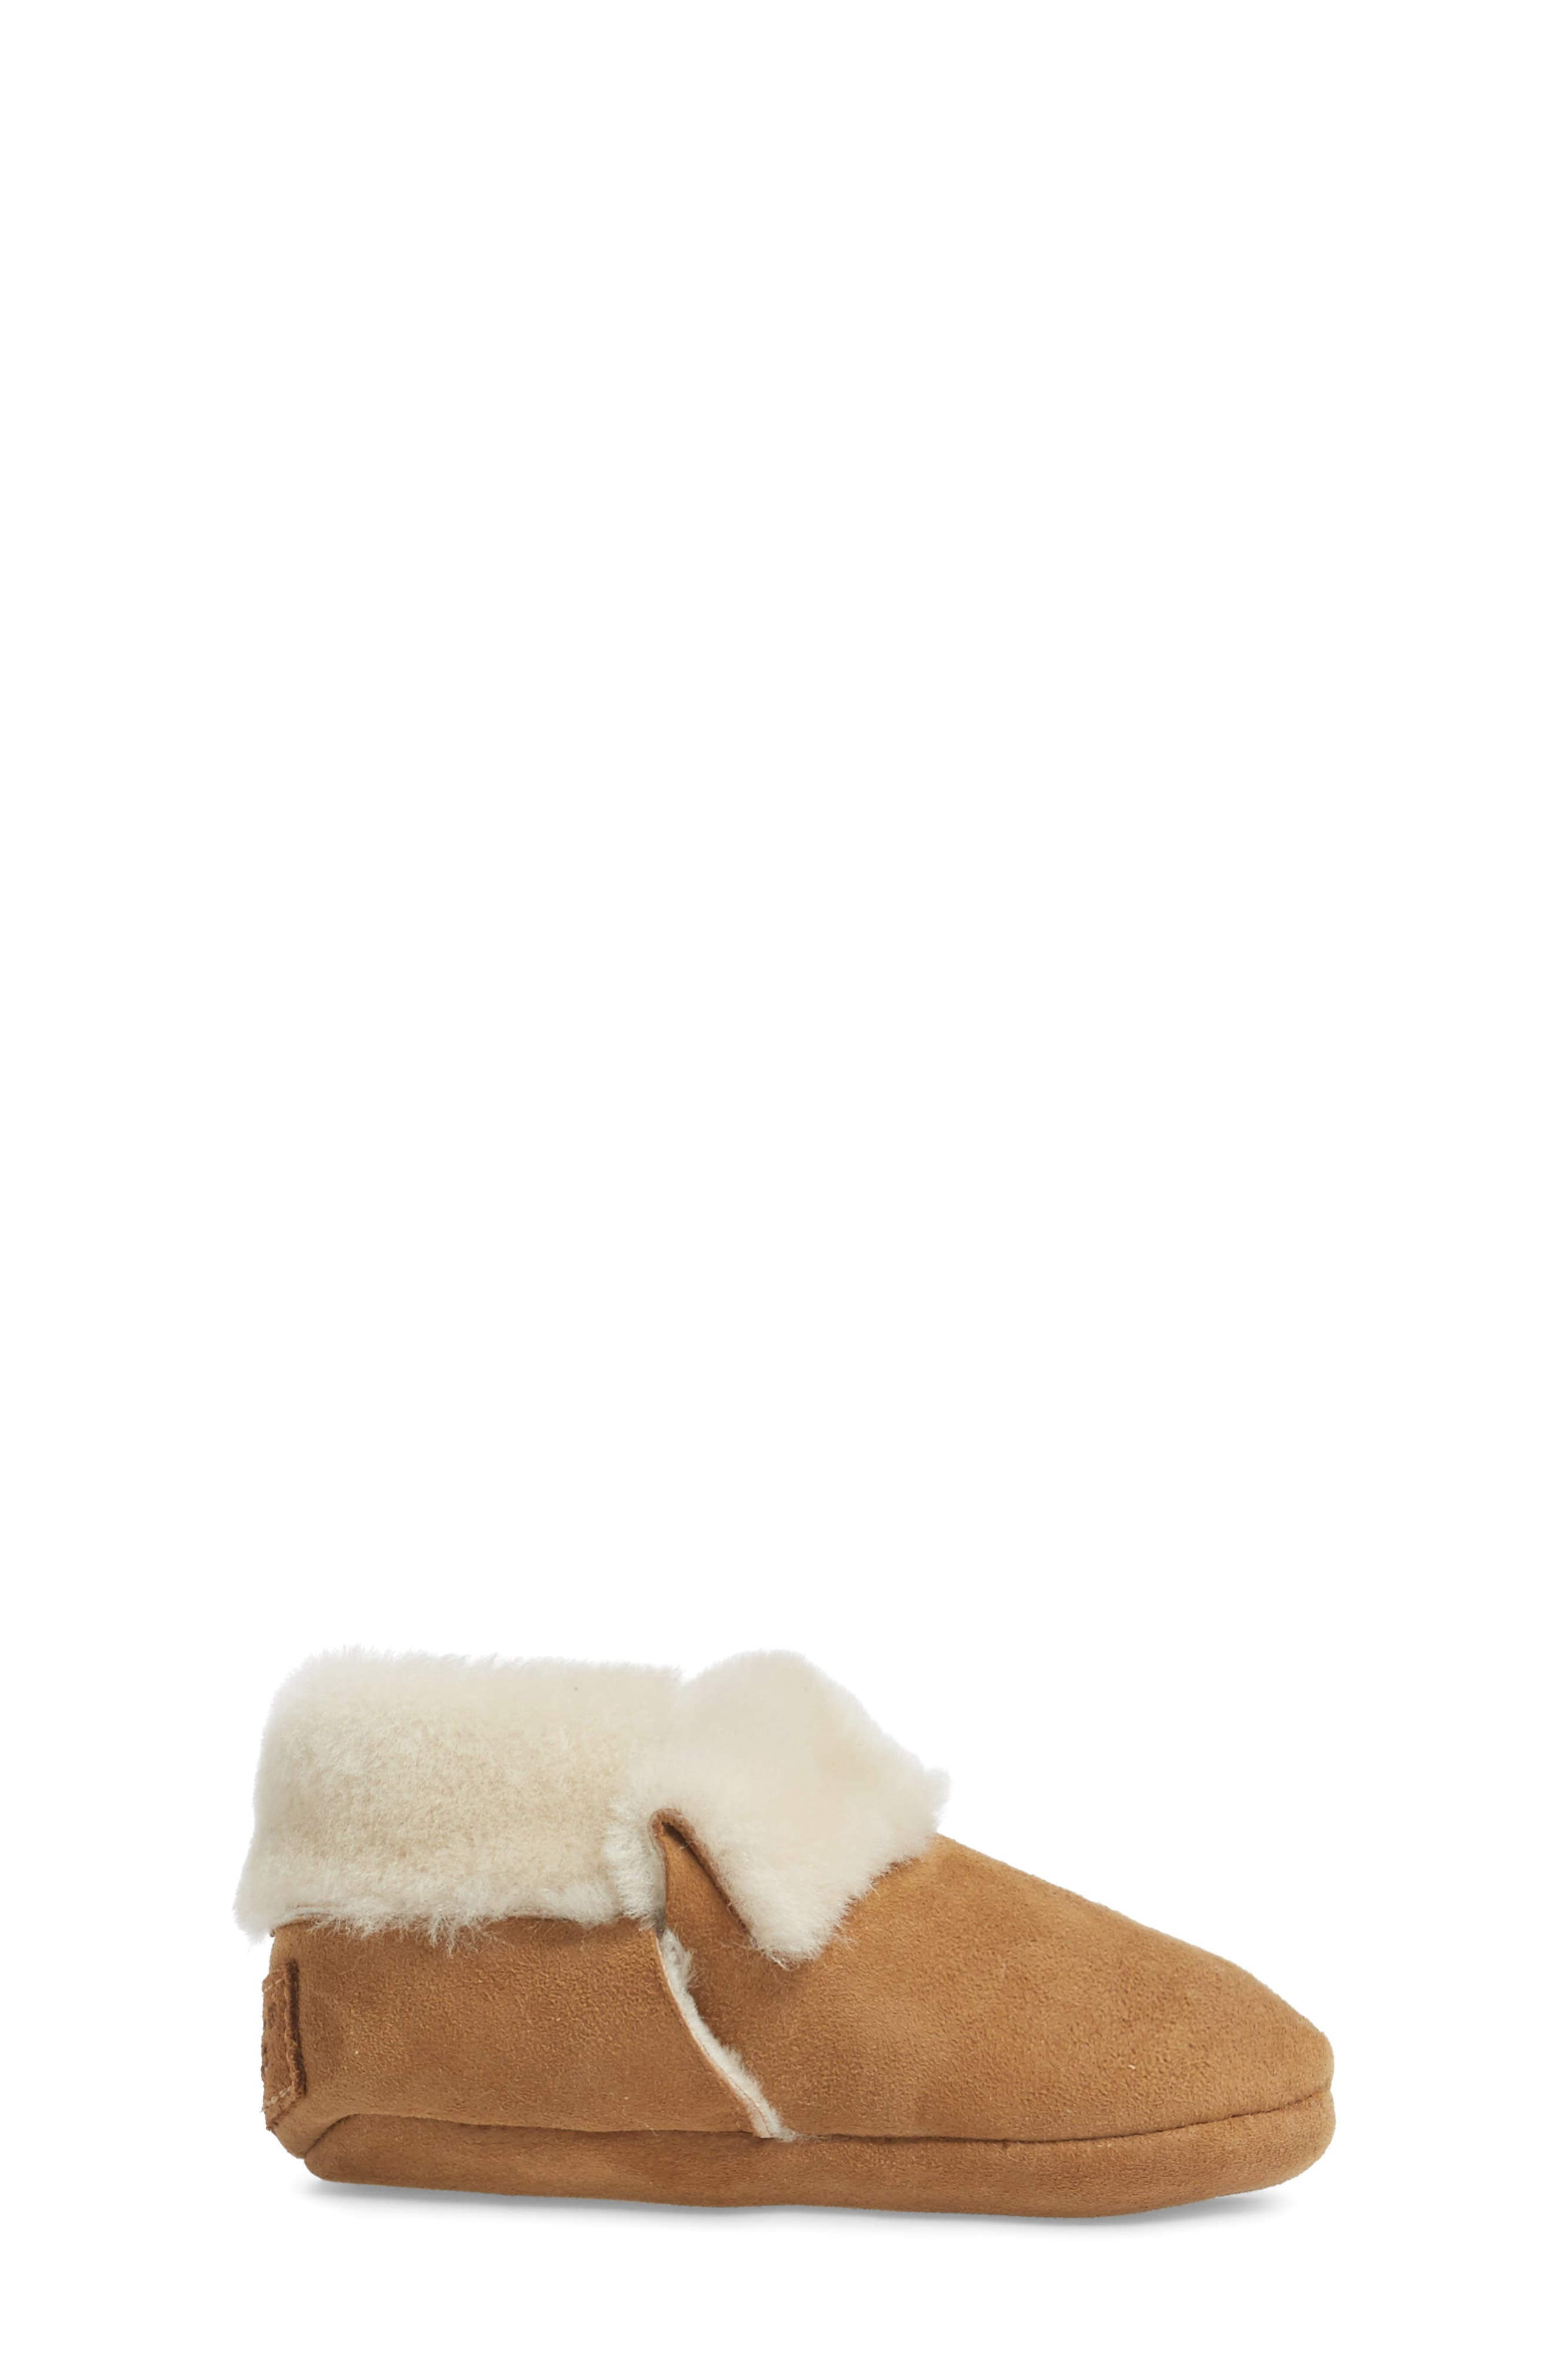 UGG<SUP>®</SUP>, Solvi Genuine Shearling Low Cuffed Bootie, Alternate thumbnail 3, color, CHESTNUT